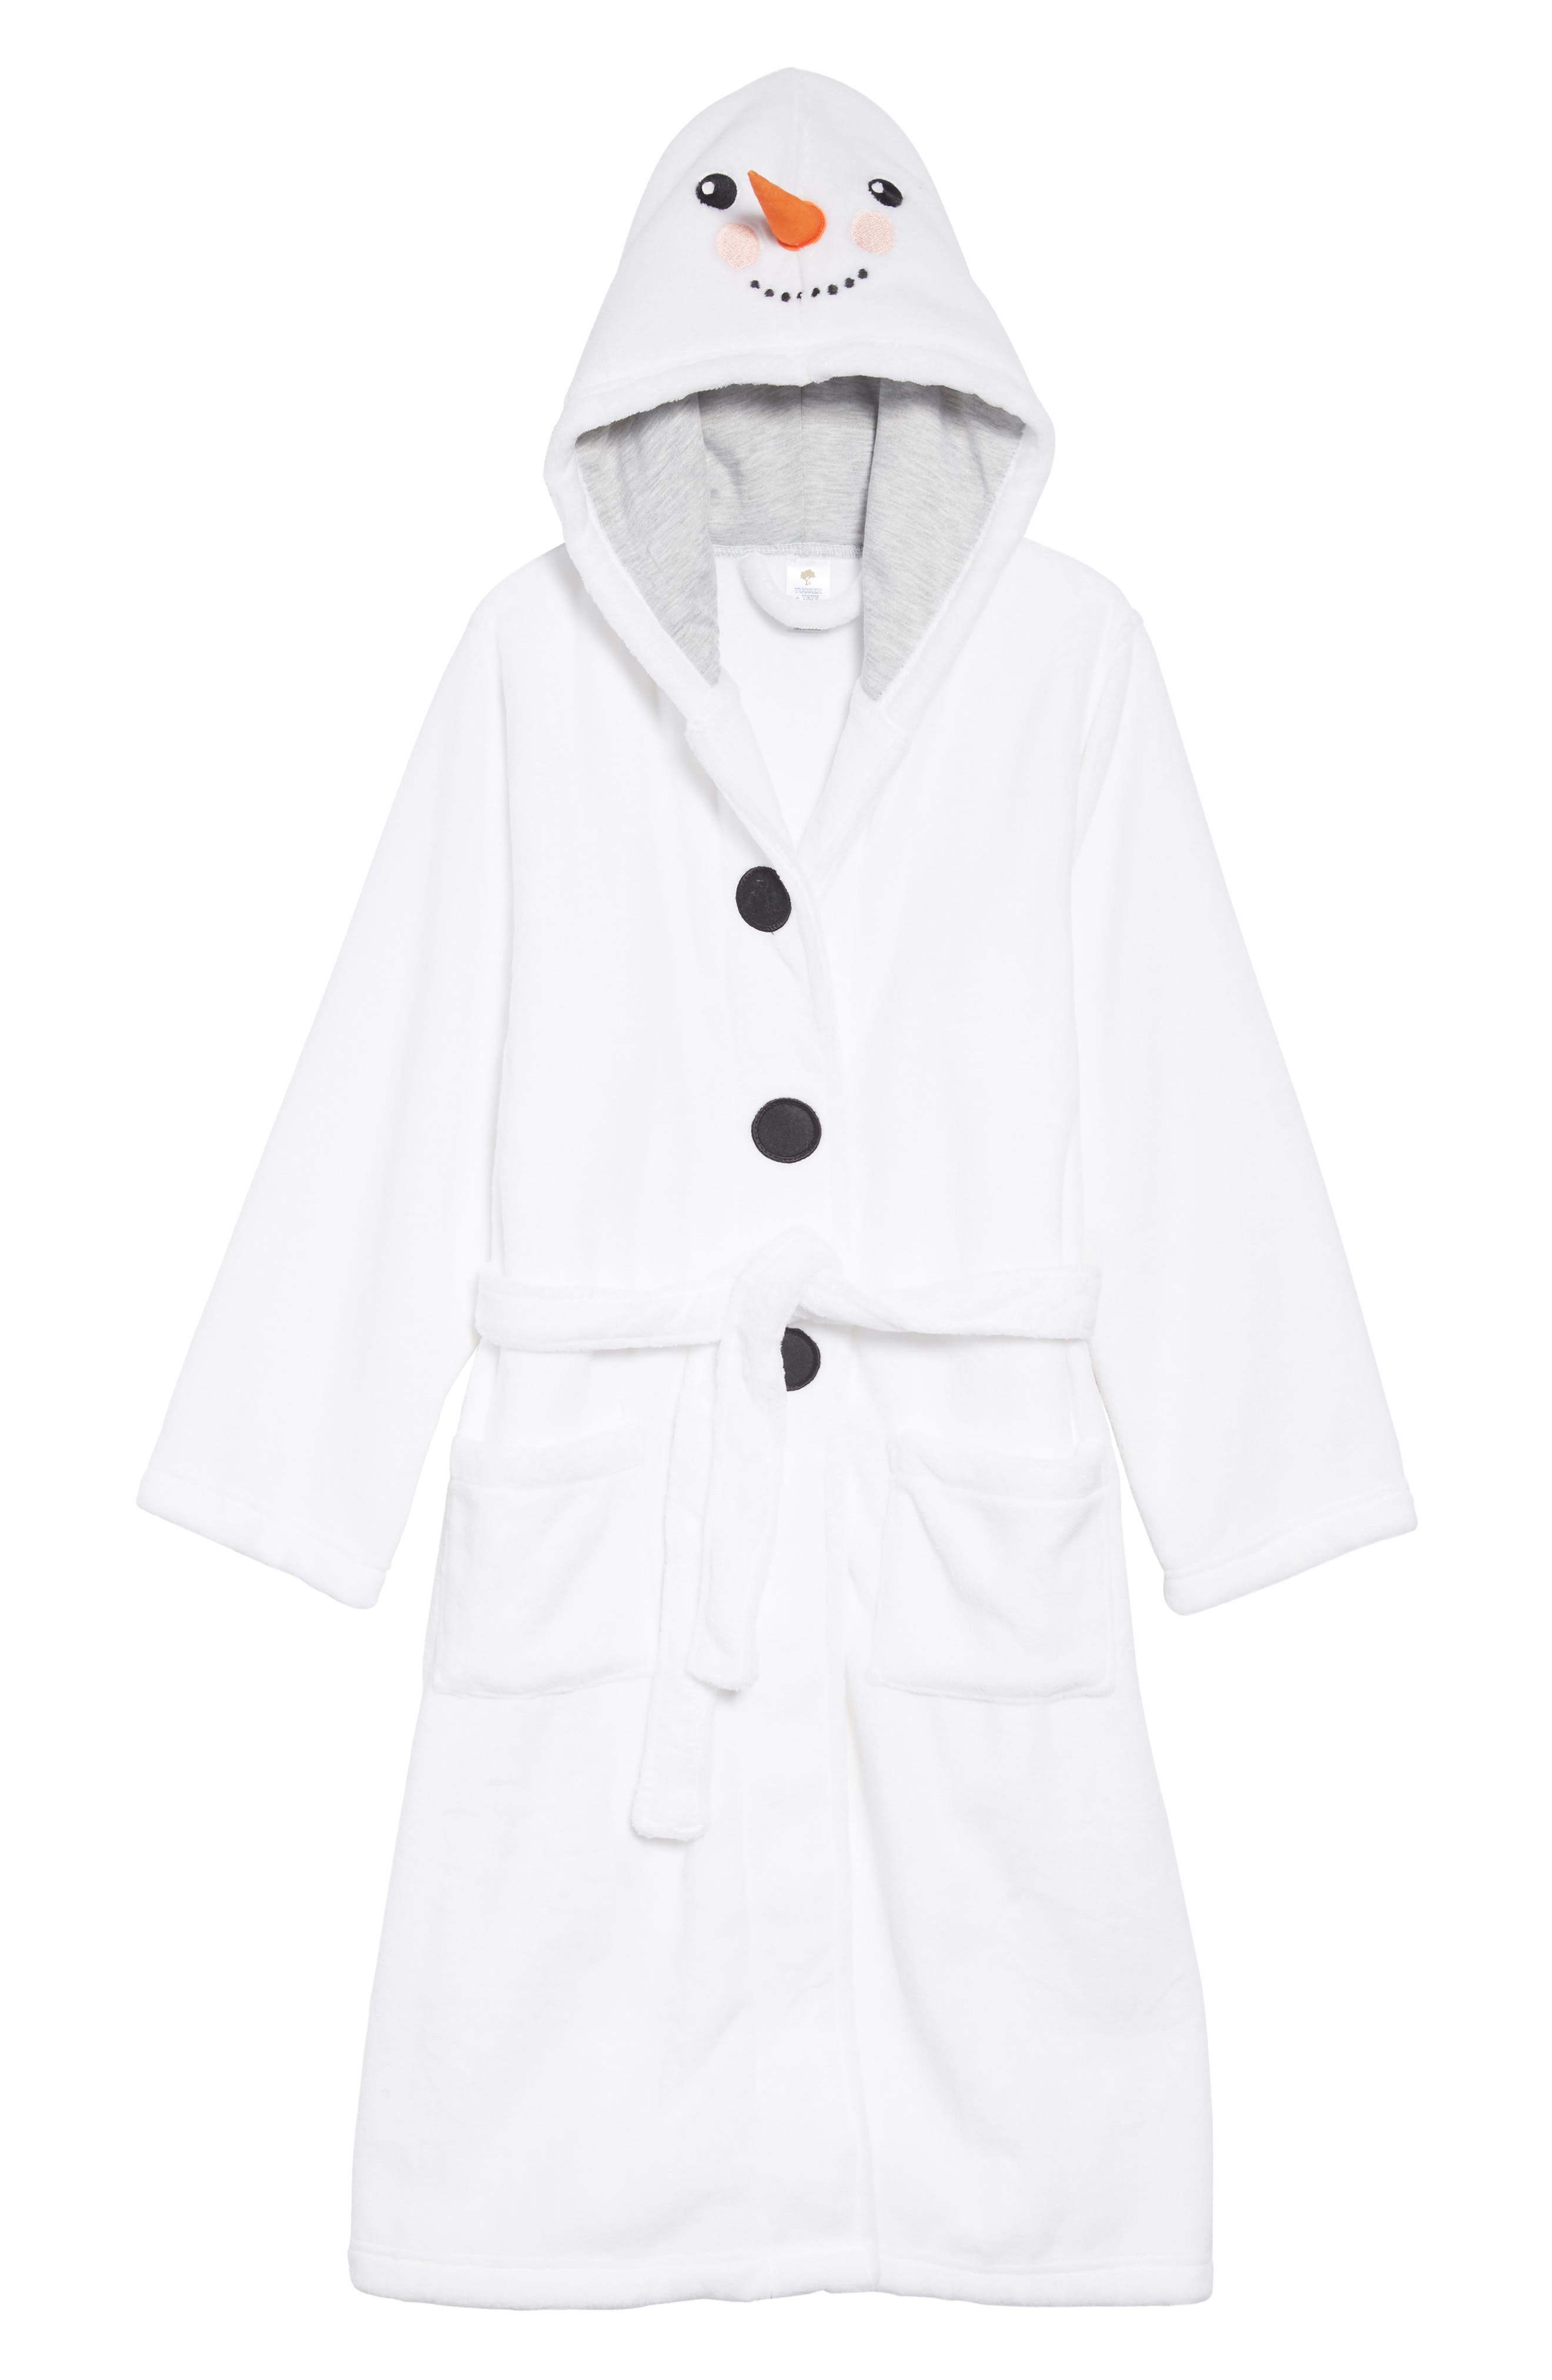 Hooded Robe,                         Main,                         color, WHITE SNOWMAN